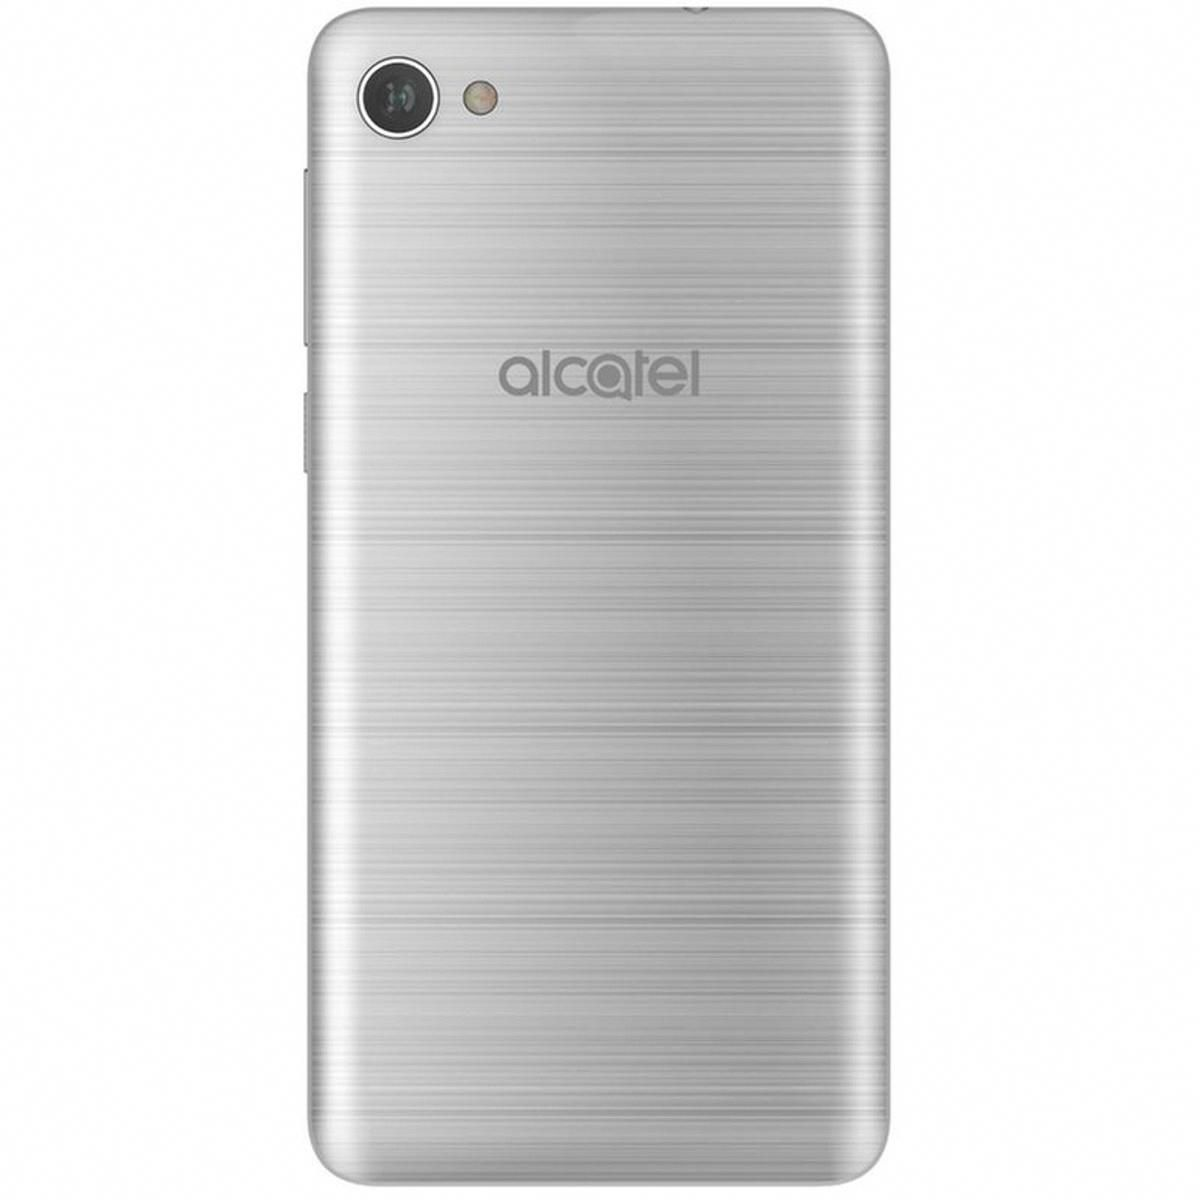 Alcatel Model A574Bl Phone Case Alcatel Model A574Bl Phone